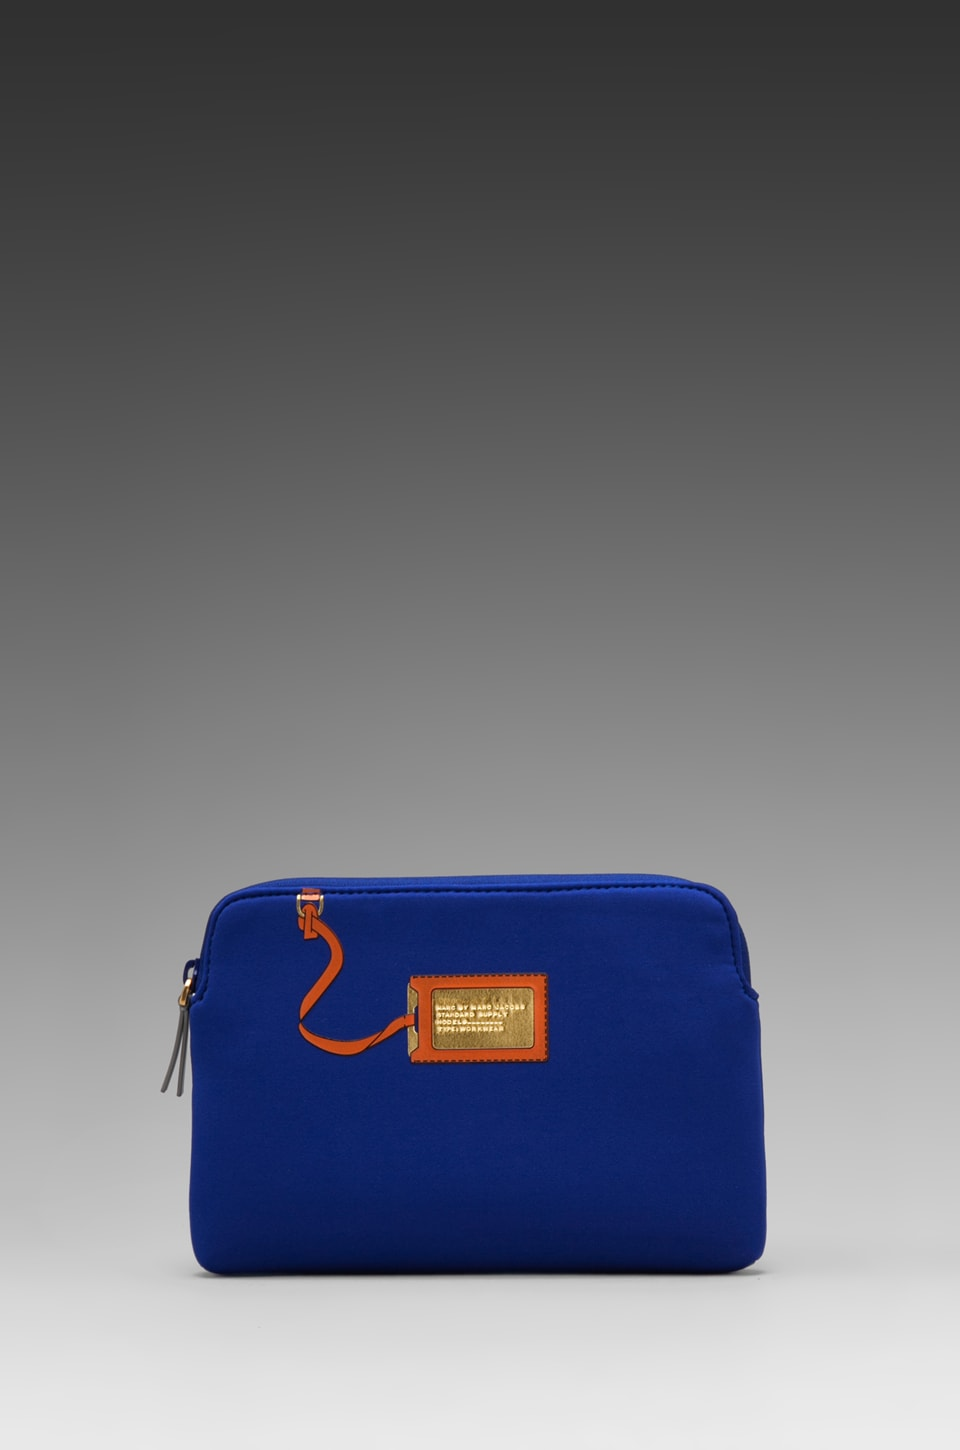 Marc by Marc Jacobs Heathrow Trompe L'oile Neoprene Mini Tablet Case in Bauhaus Blue Multi